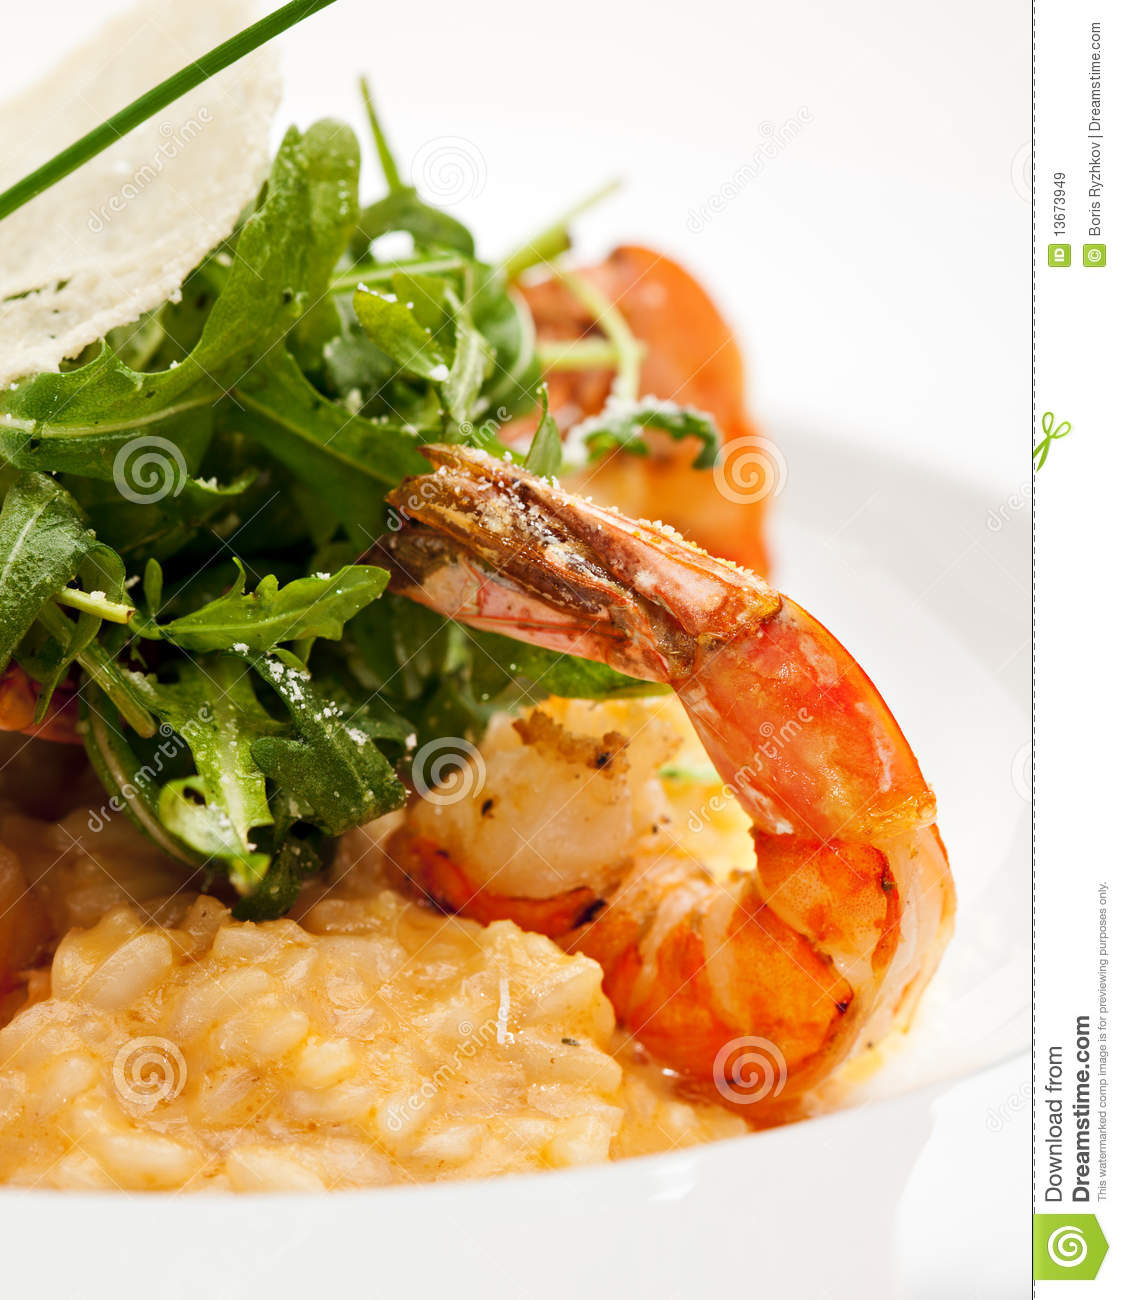 Seafood Risotto Stock Image. Image Of Eating, Lunch